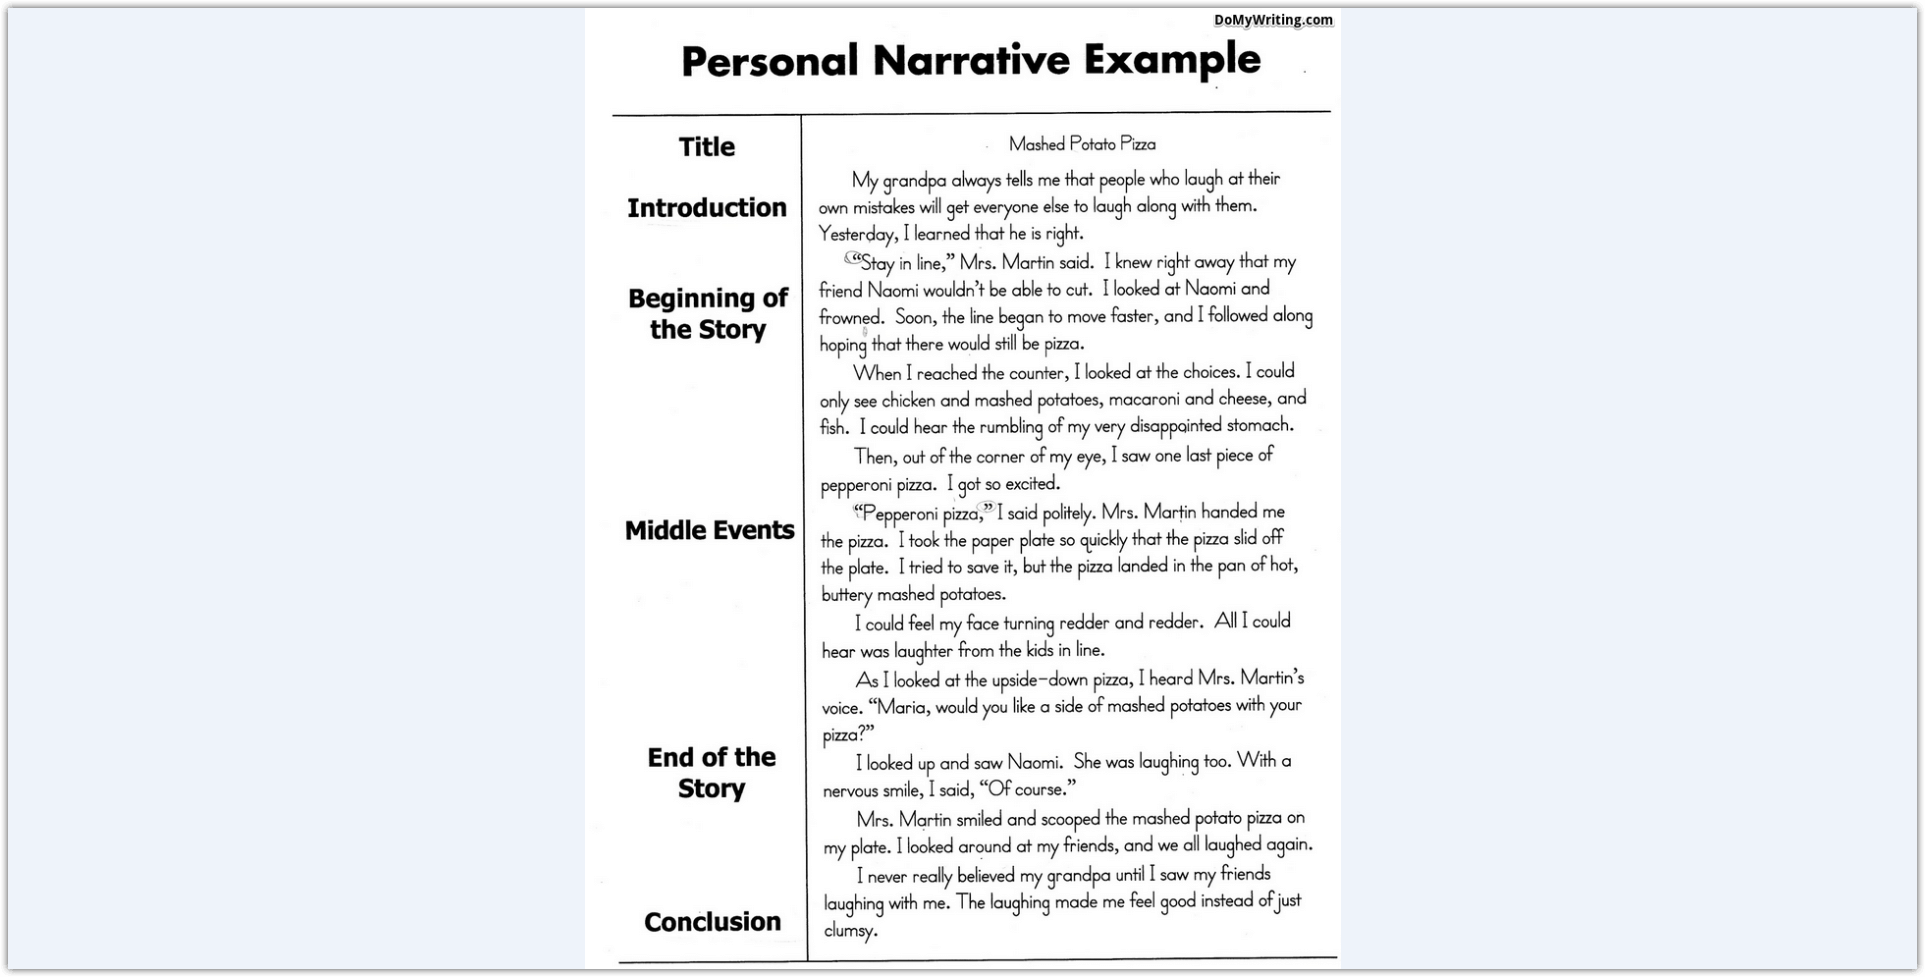 010 How To Write Narrative Essay Outstanding Pdf A Personal Introduction Full